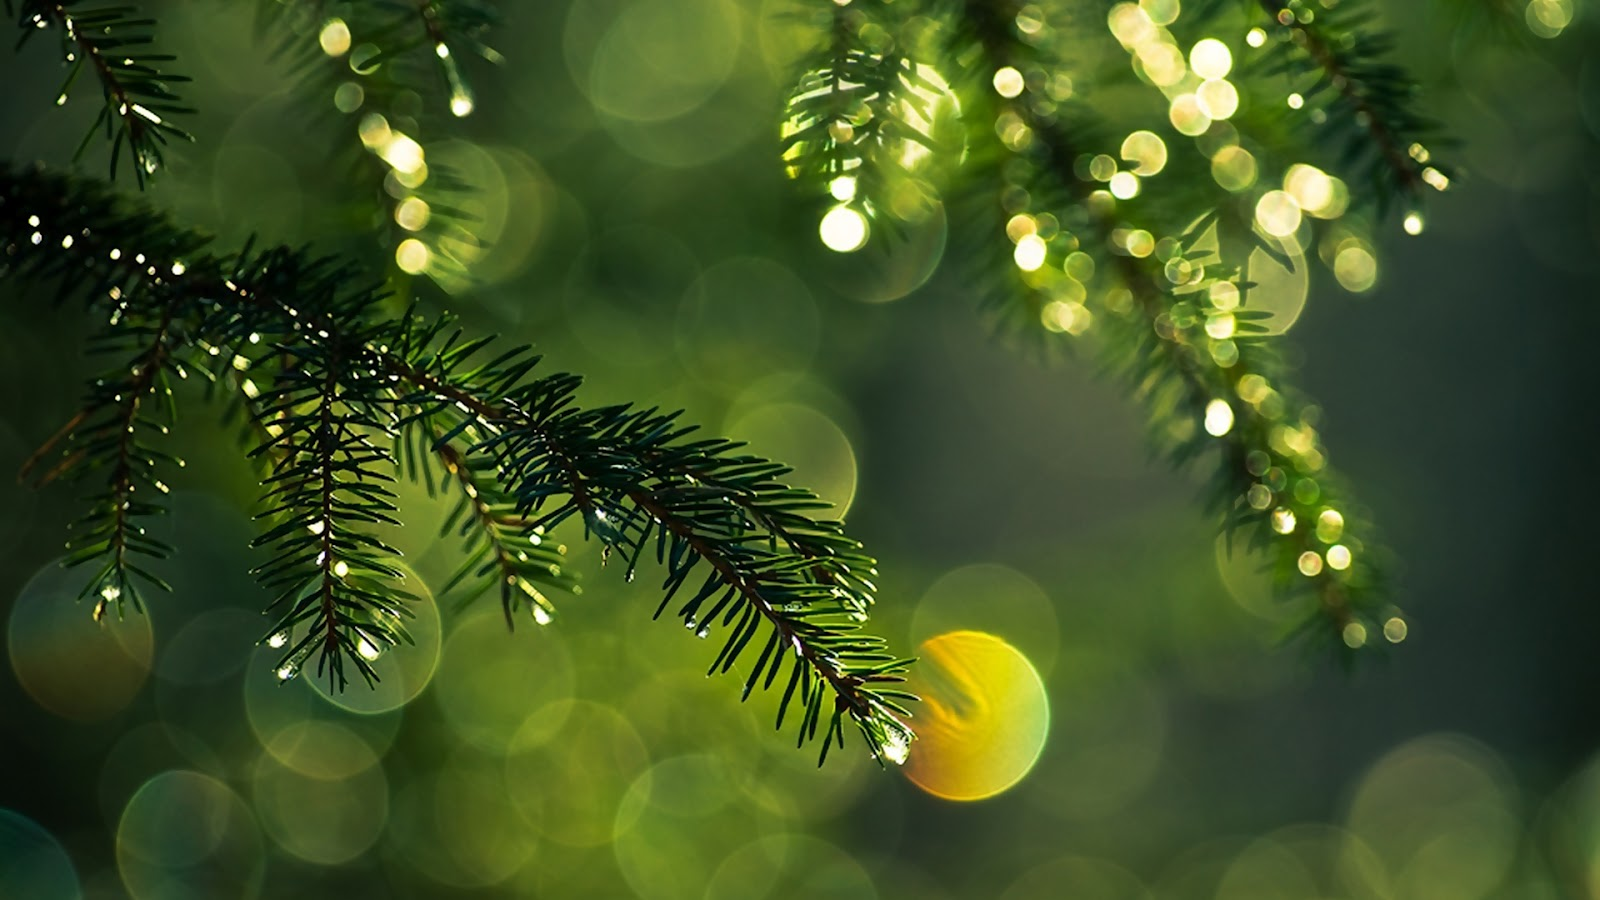 Fir Tree After the Rain